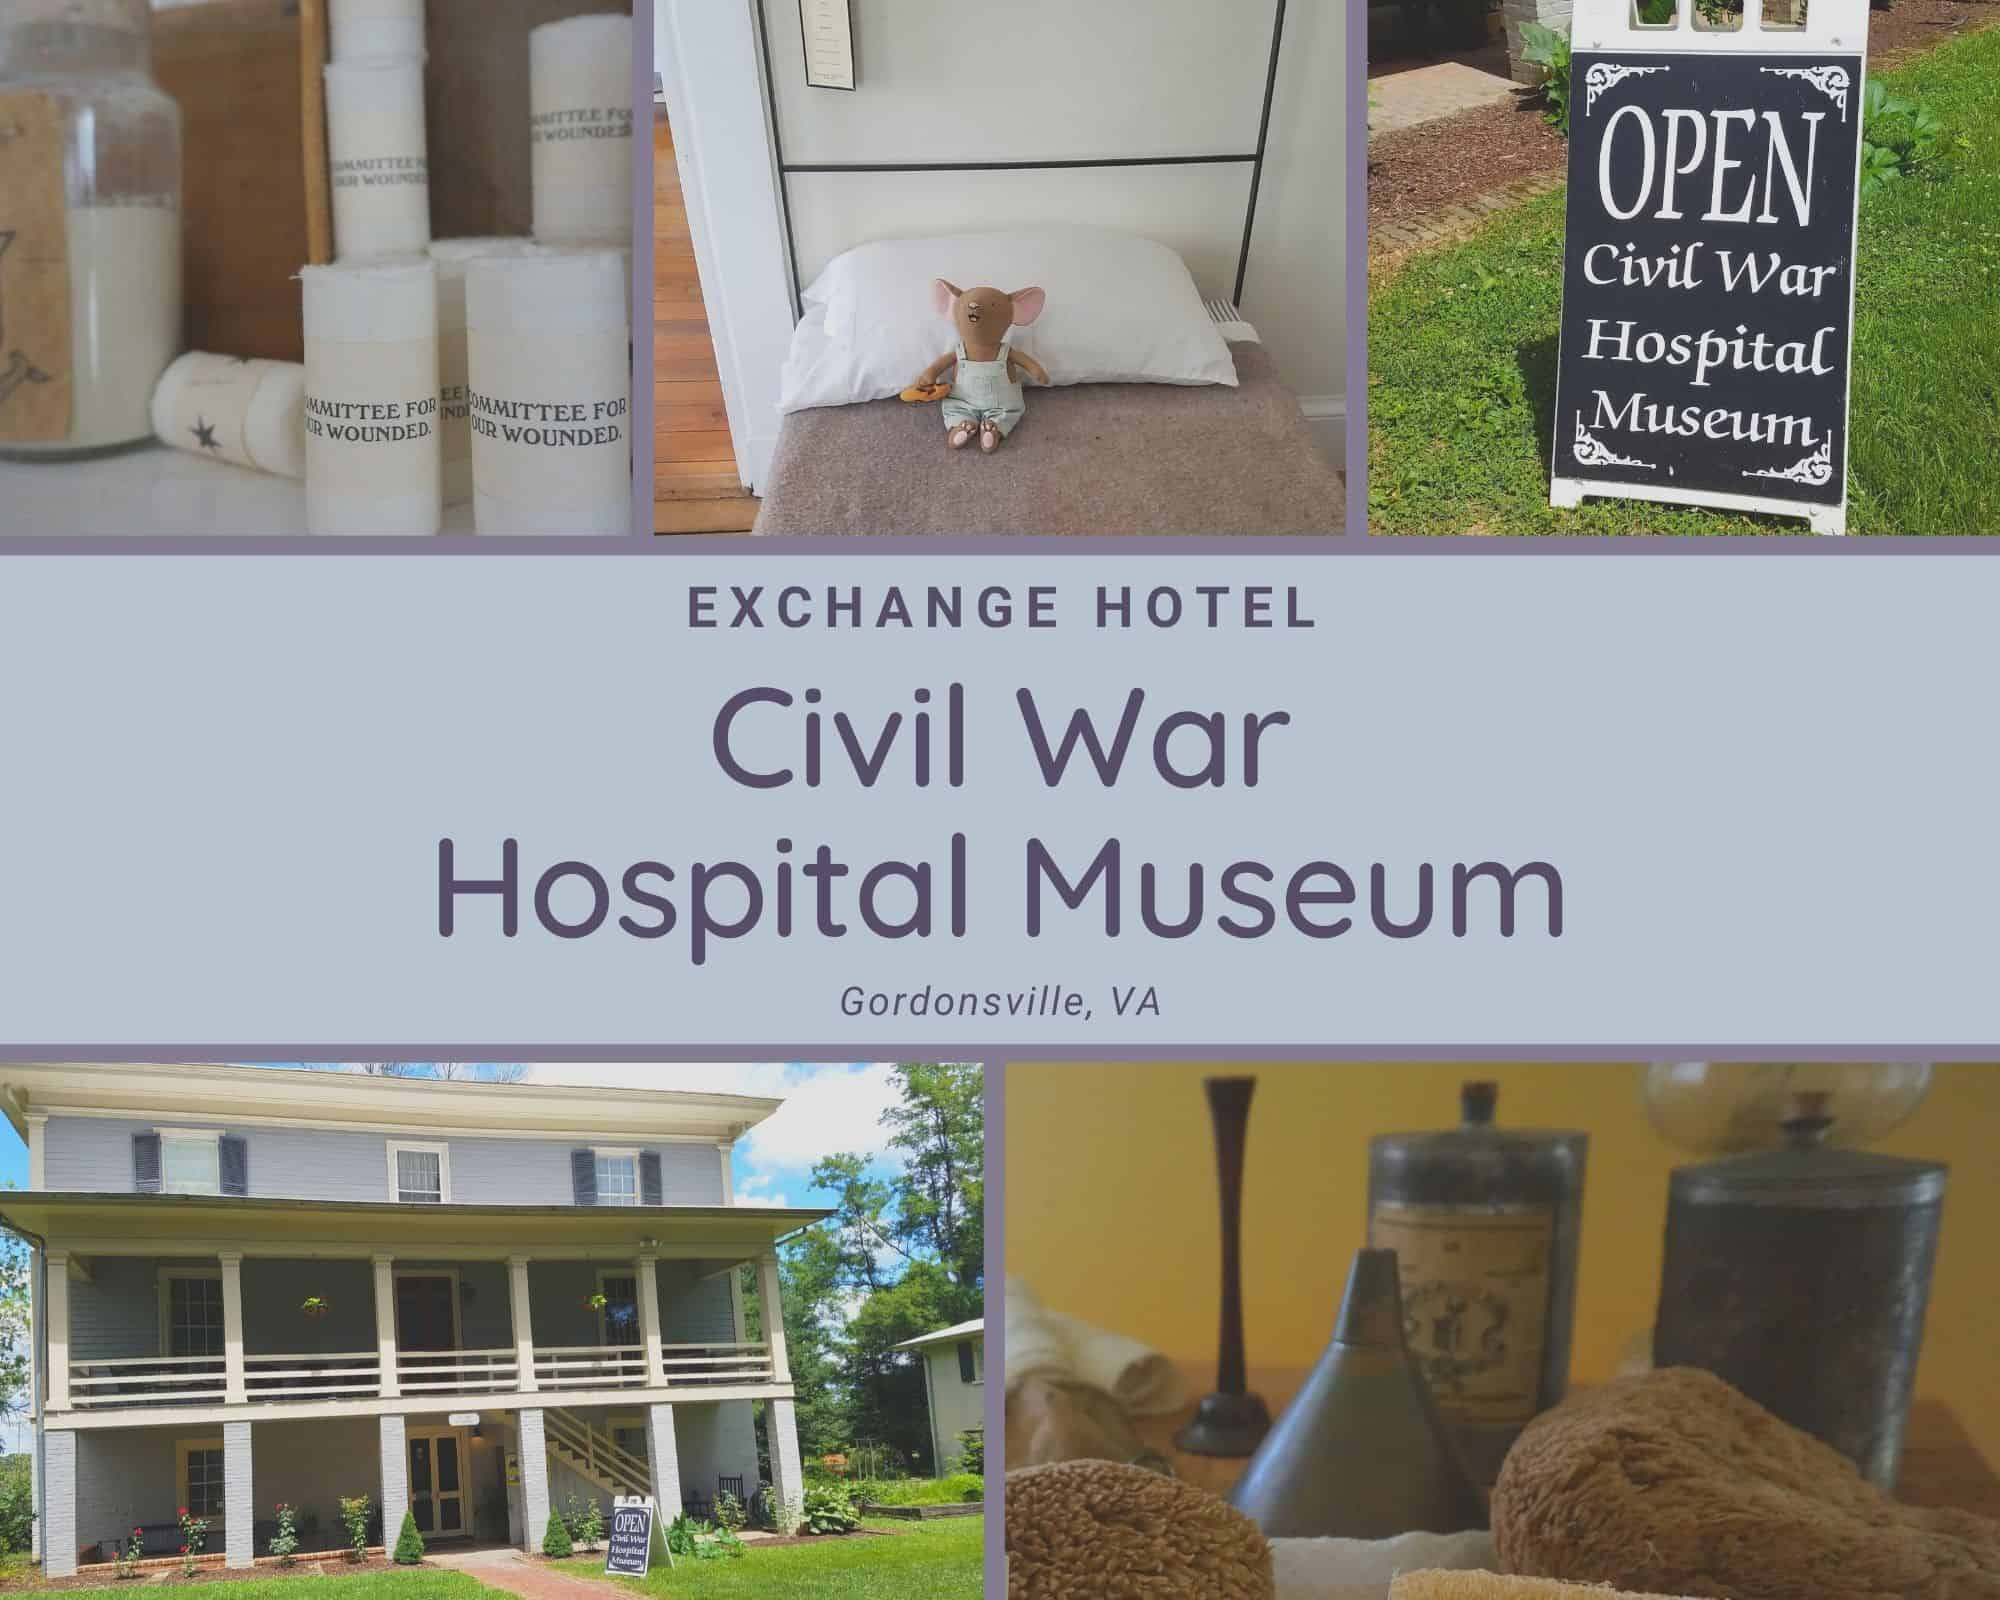 Were there ghosts?! Visiting the Exchange Hotel Civil War Medical Museum via @behindeveryday